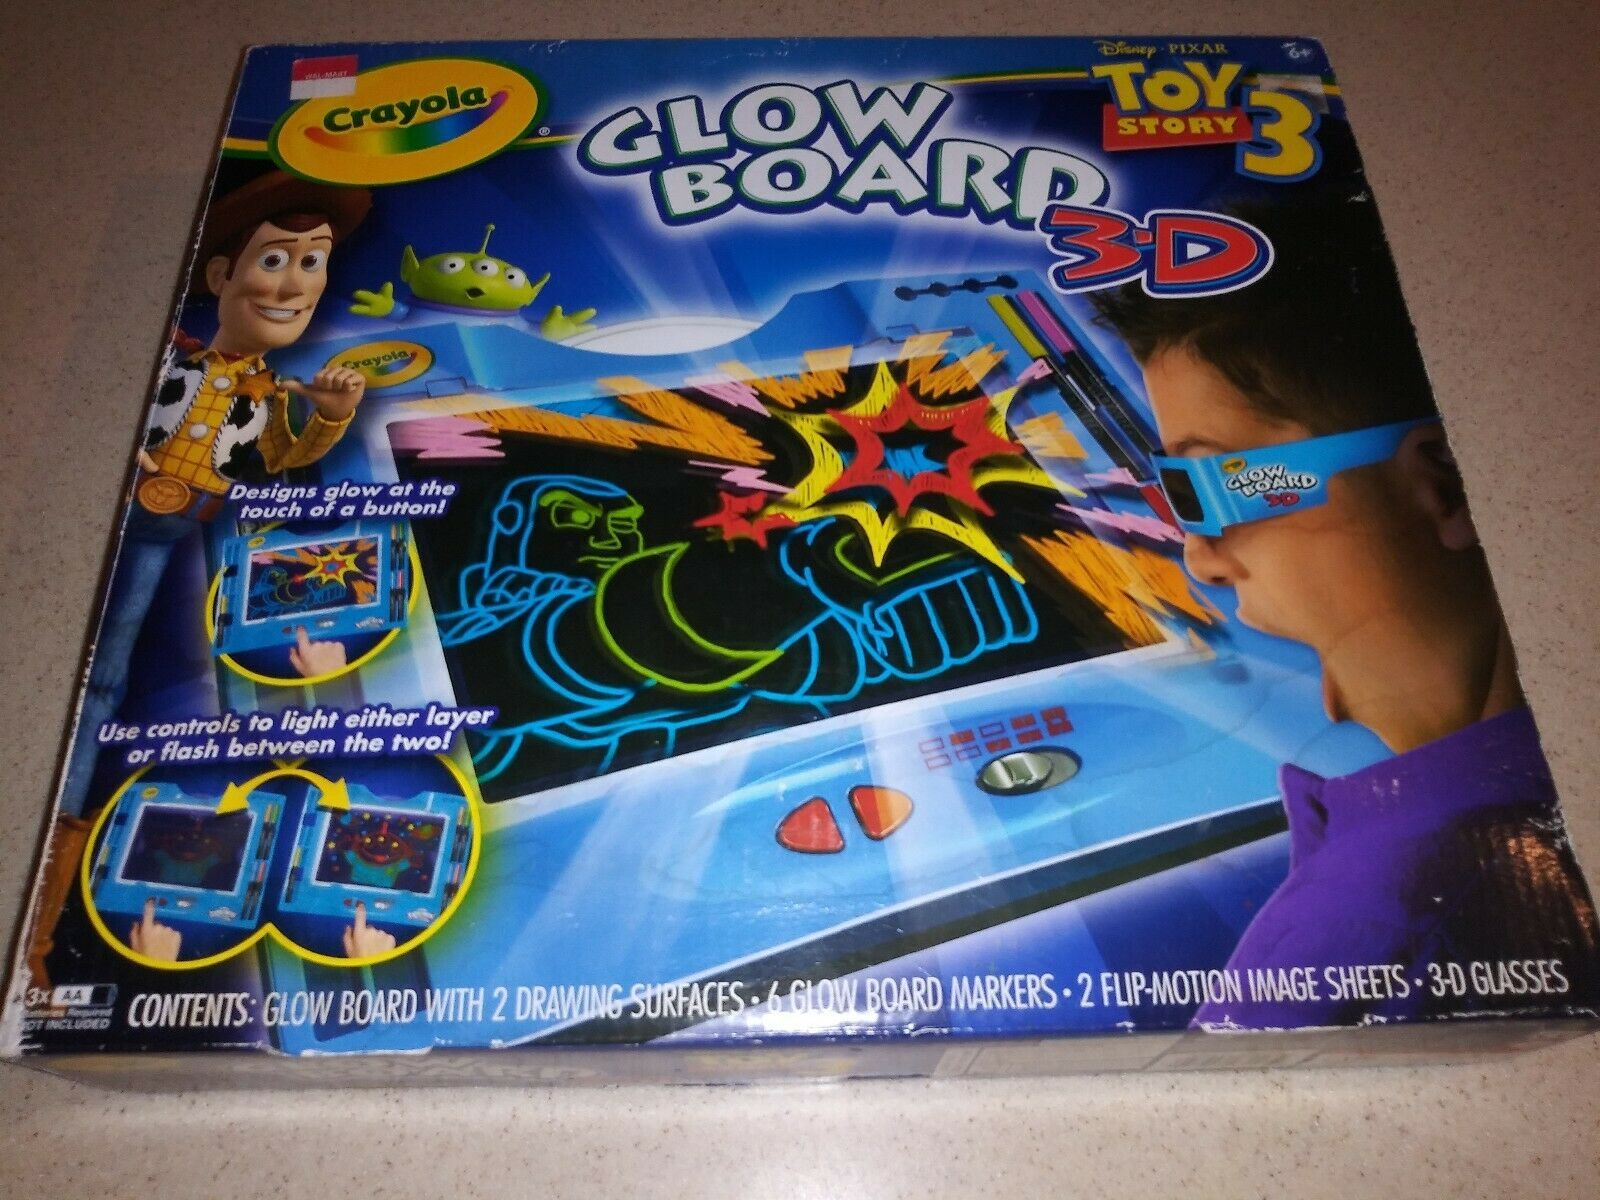 Download TOY STORY 3 Crayola Glow Board 3D Coloring & Drawing Board Activity Set Kit | Nokomis Bookstore ...